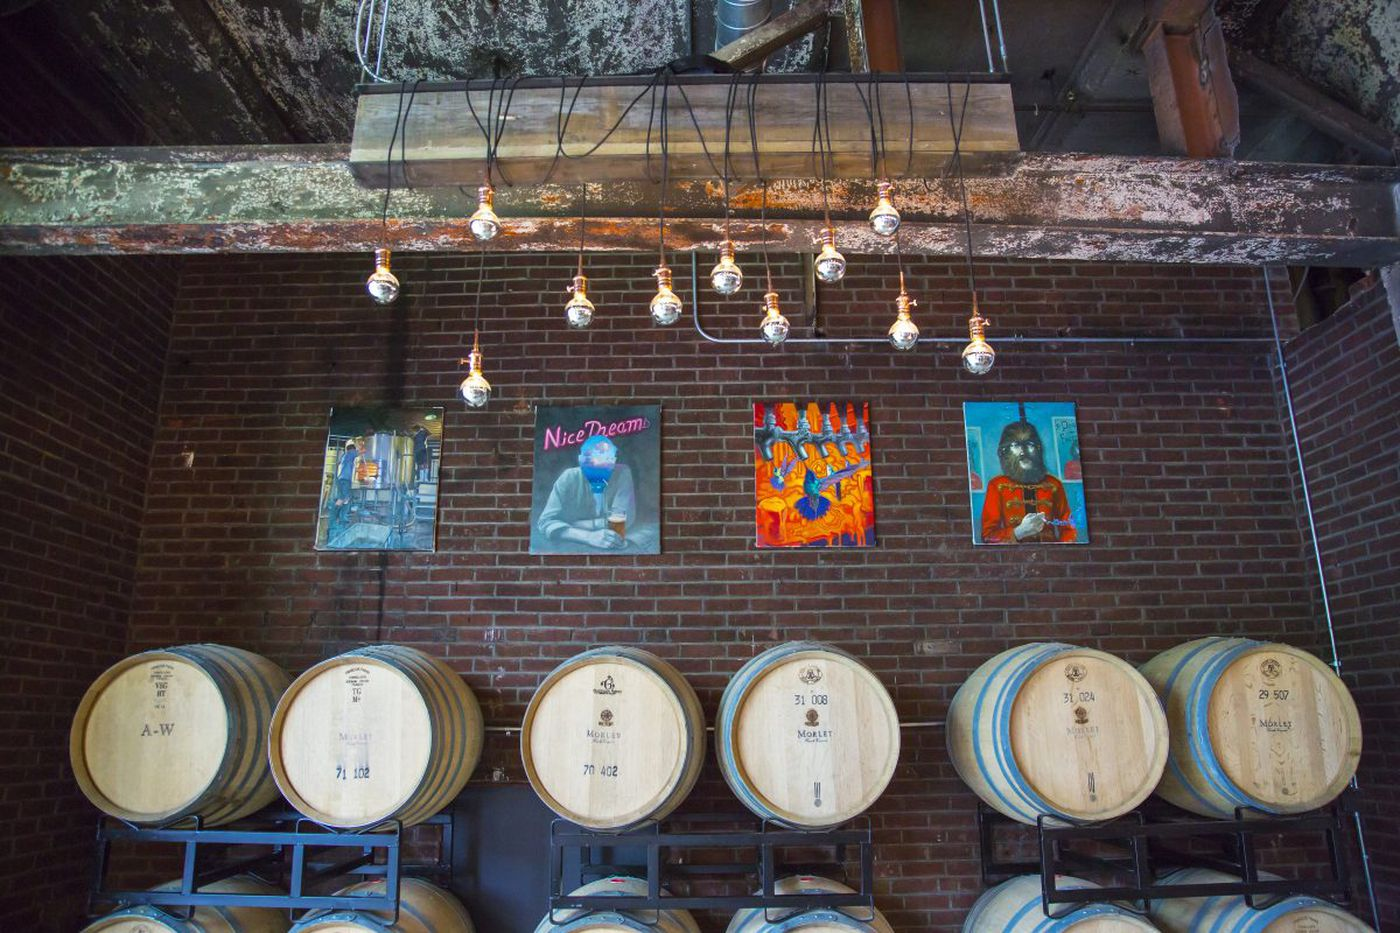 Creepy art and bizarre names: How far will Philly brewers go to stand out?